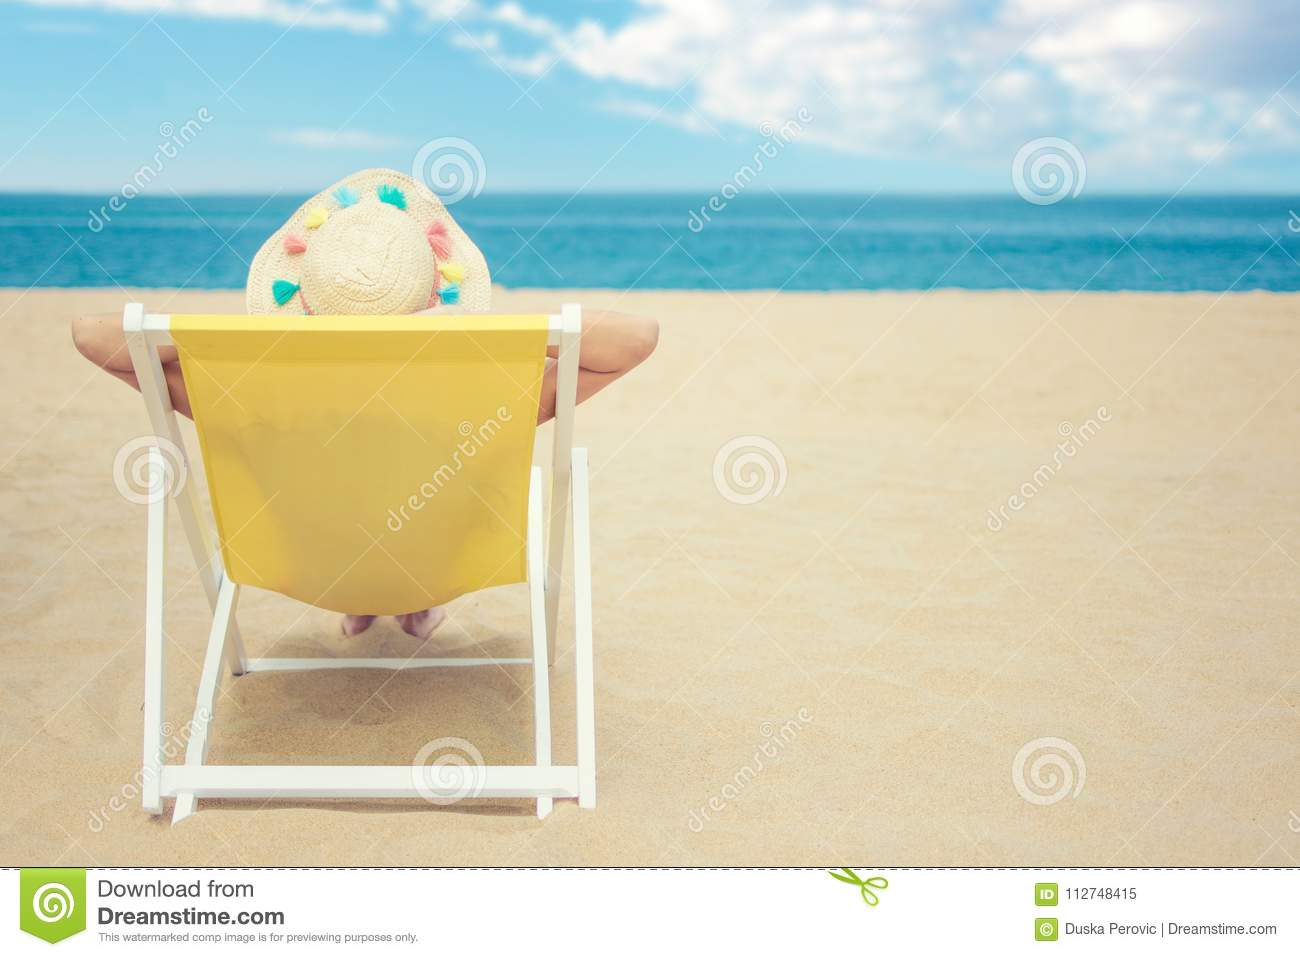 Female tanning on the beach, wearing straw hat, enjoying beautiful seascape, travel and tourism concept